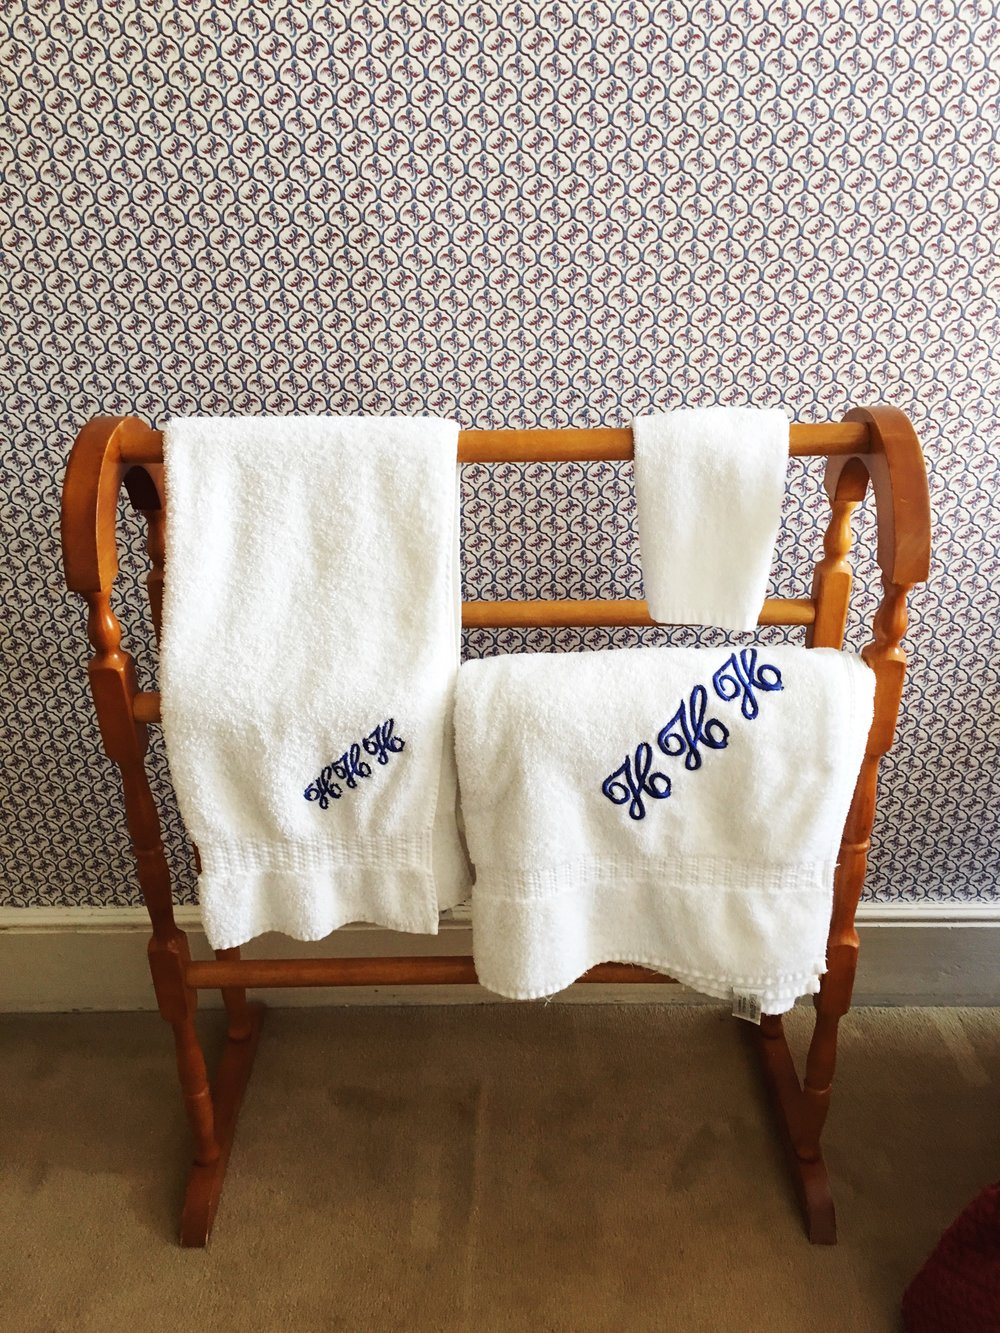 Monogrammed towels, of course. © Eileen Hsieh / Follow That Bug